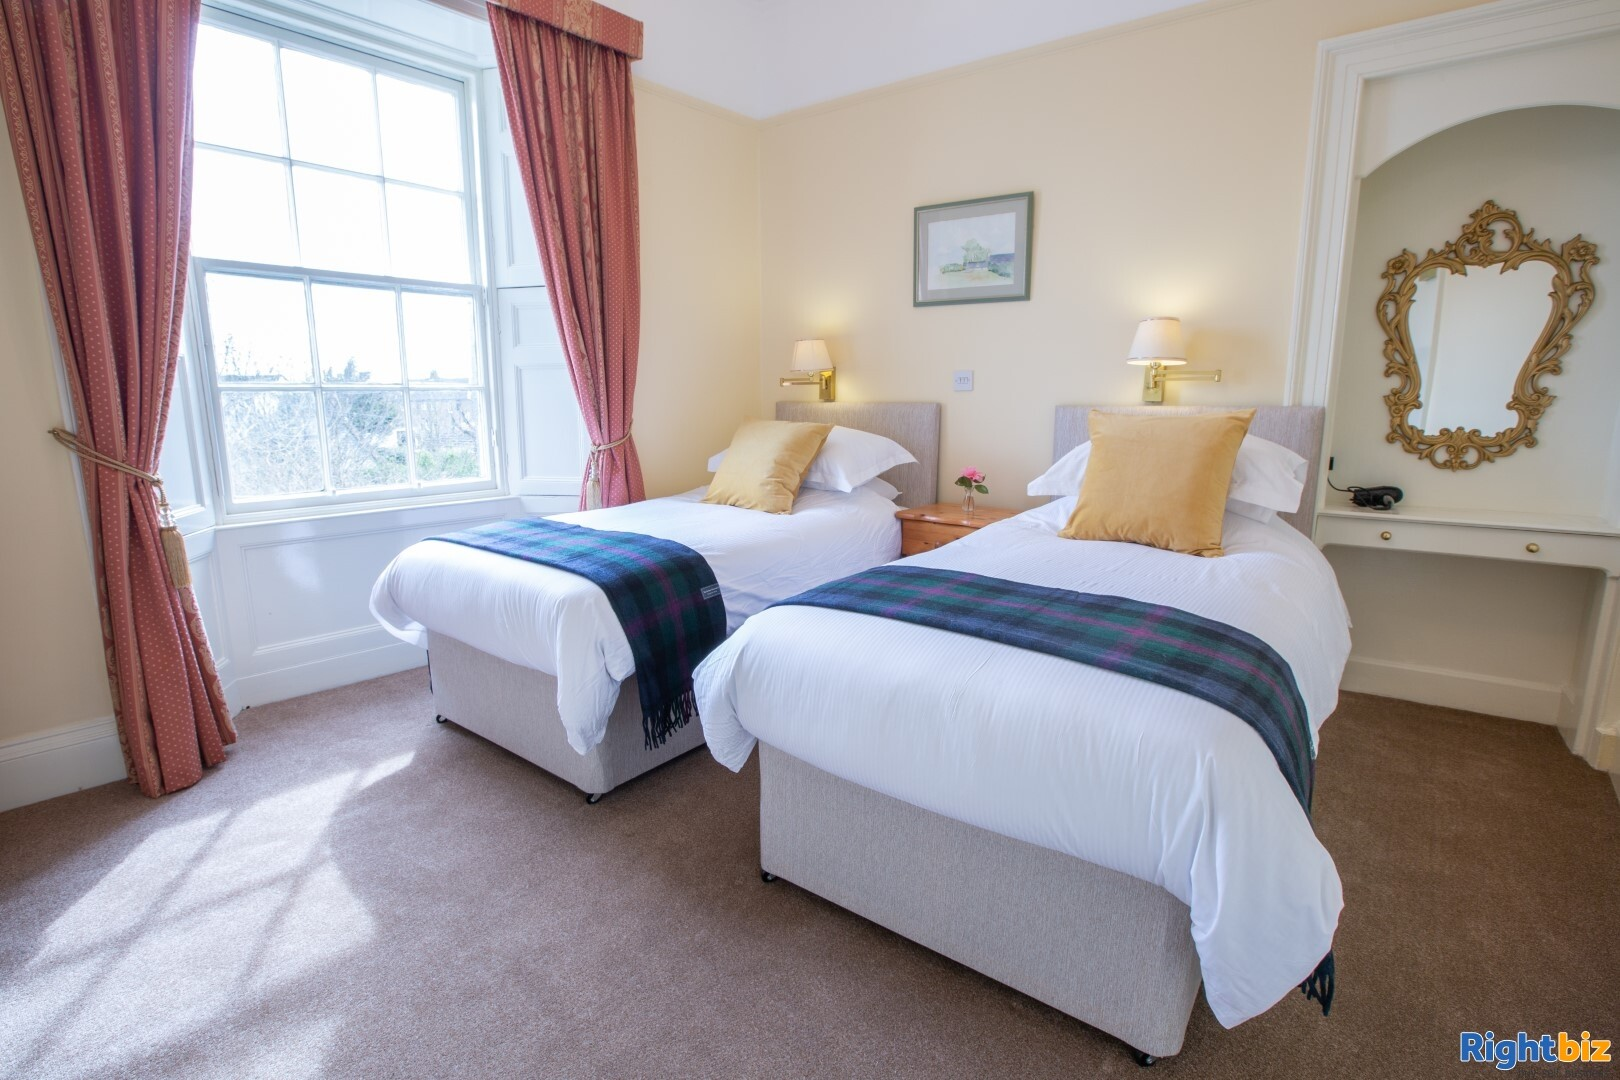 A stunning recently refurbished small Hotel with Restaurant in Kirkcudbright - Image 8